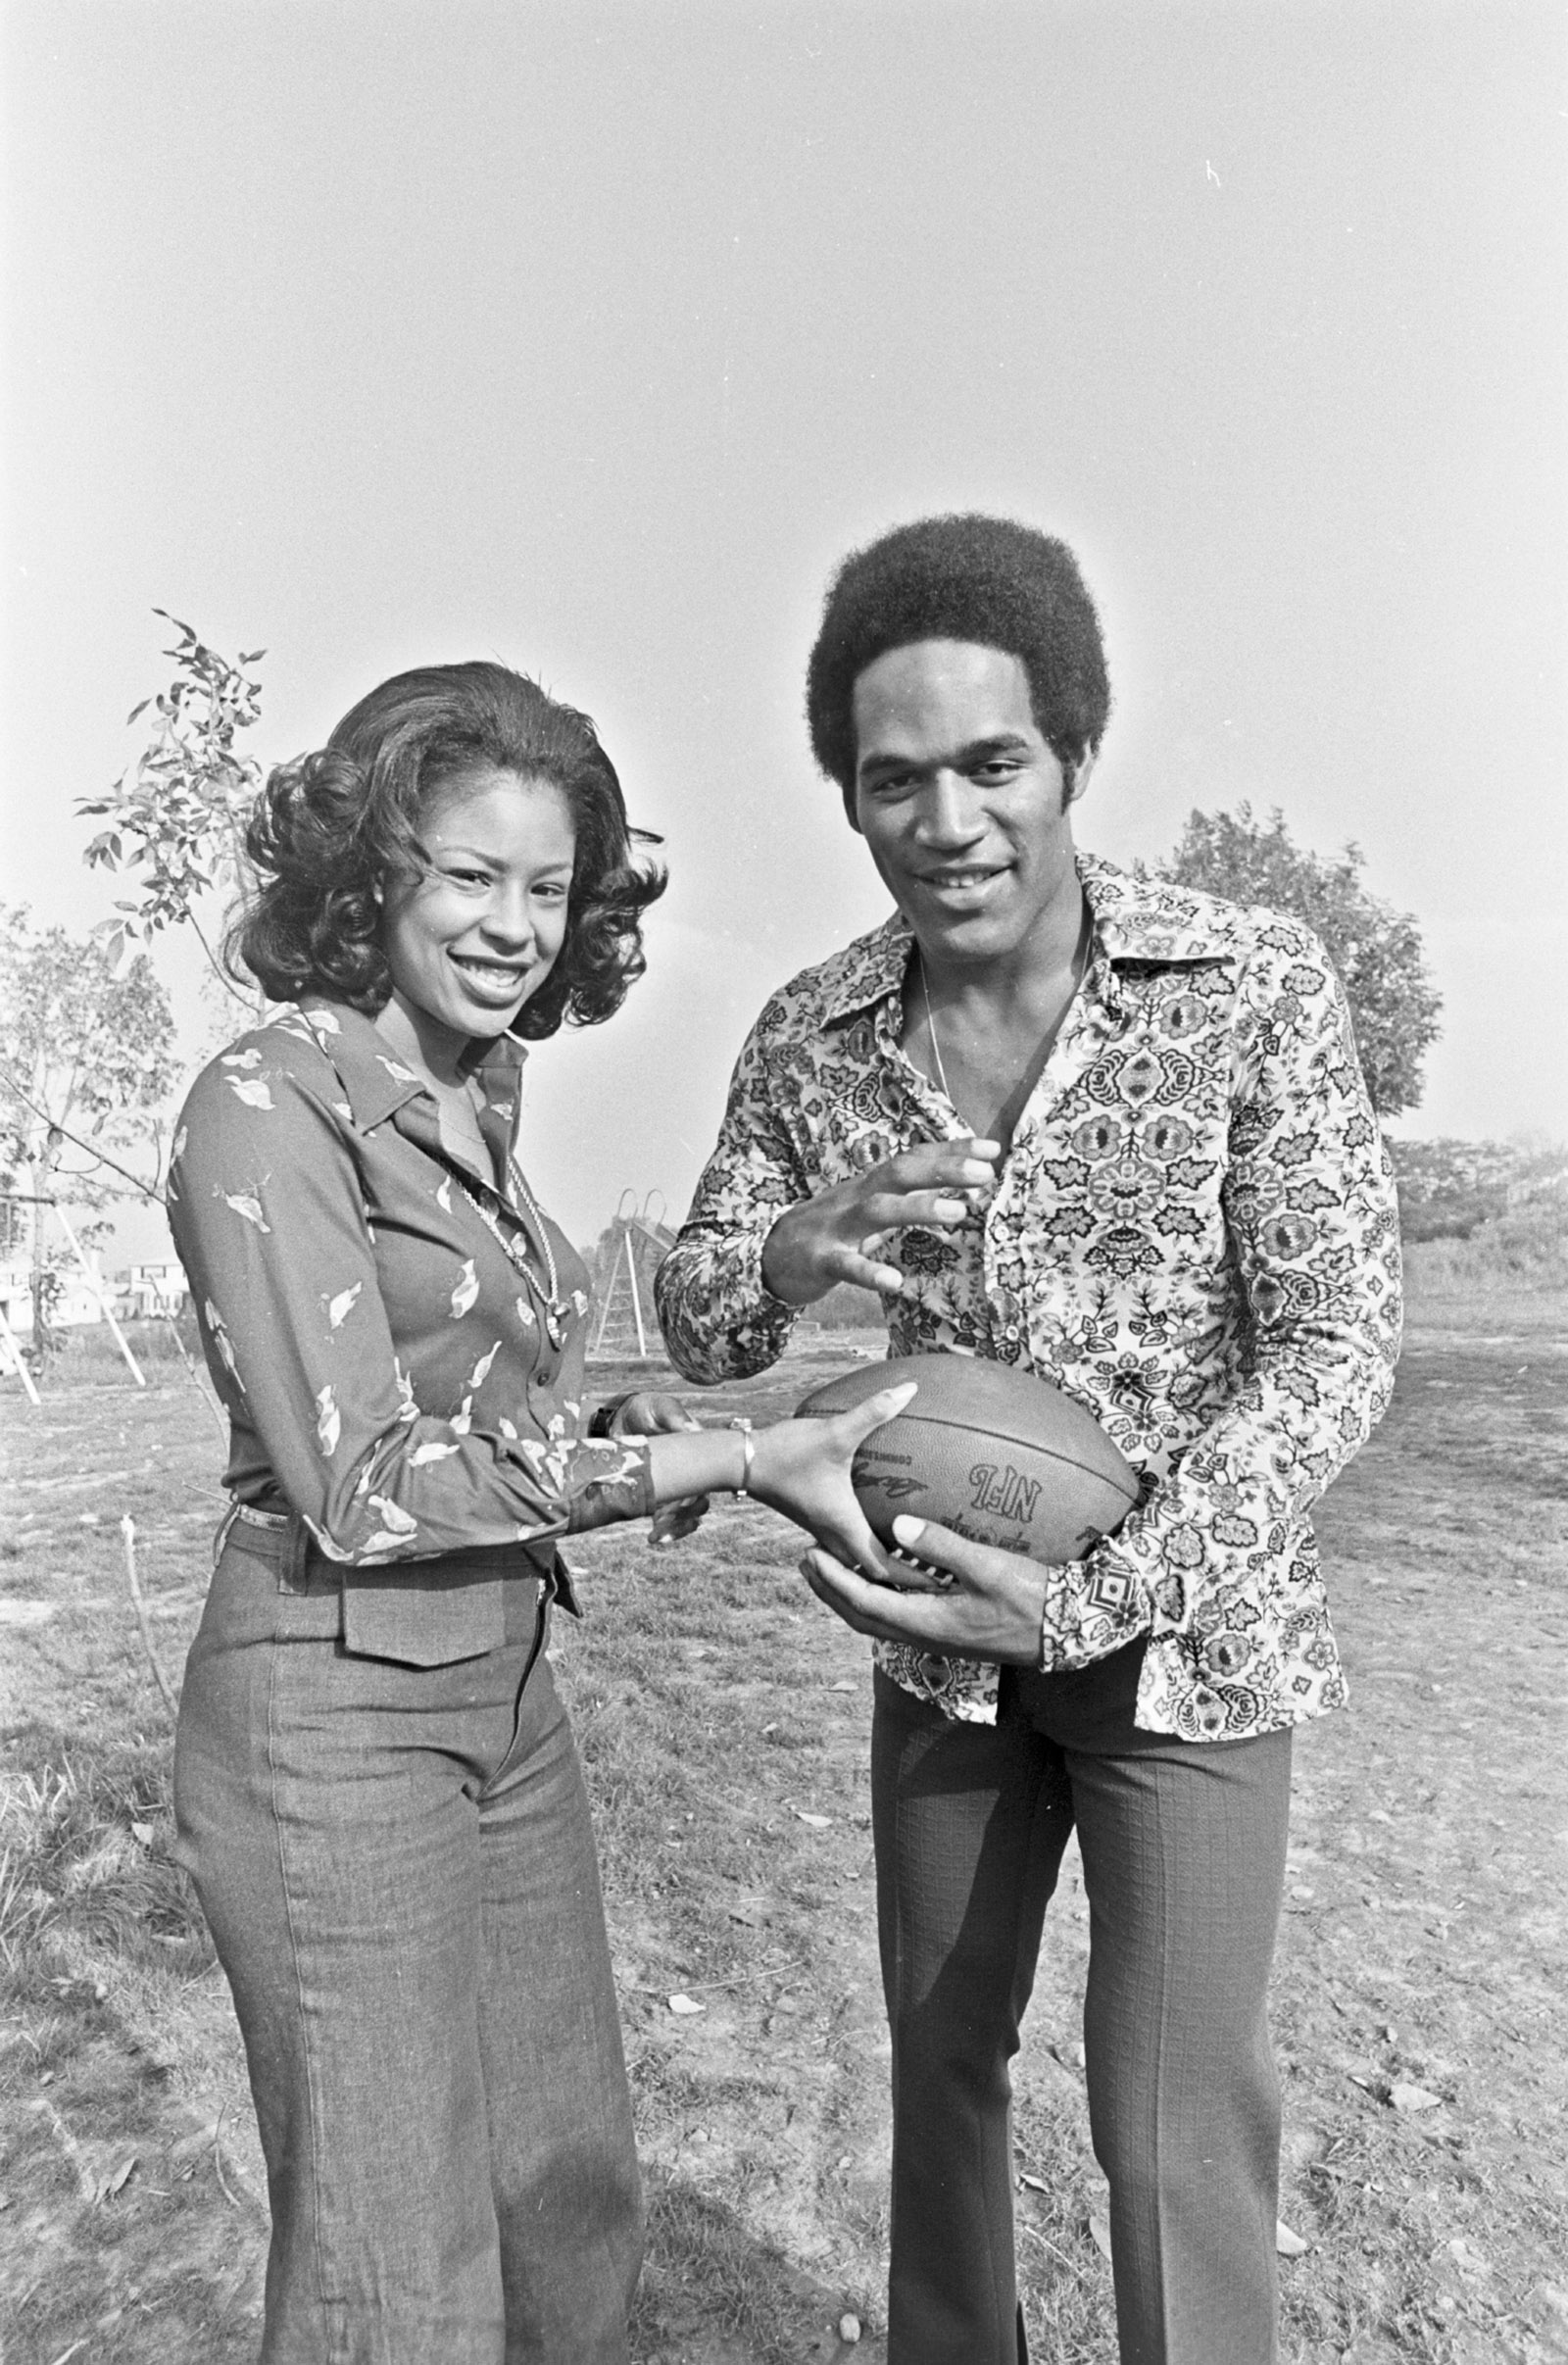 O.J. Simpson with his first wife, Marguerite Whitley, Amherst, New York, 1973; from Ezra Edelman's documentary O.J.: Made in America